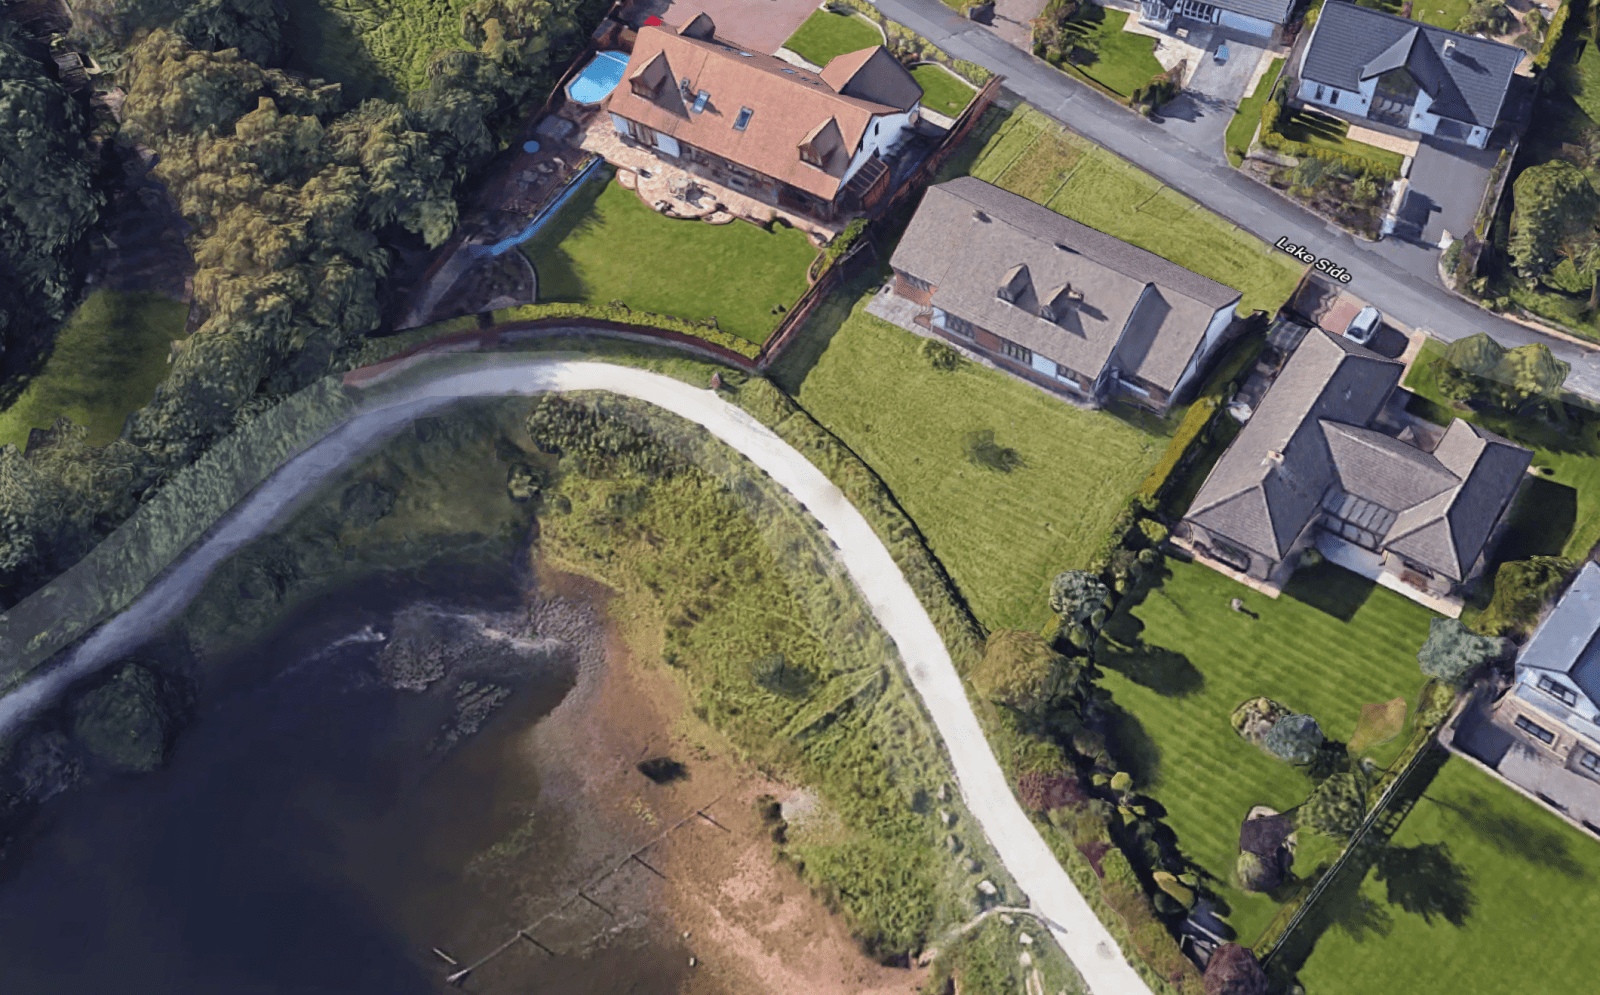 The famous empty home next to Hollingworth Lake could soon be demolished, The Manc